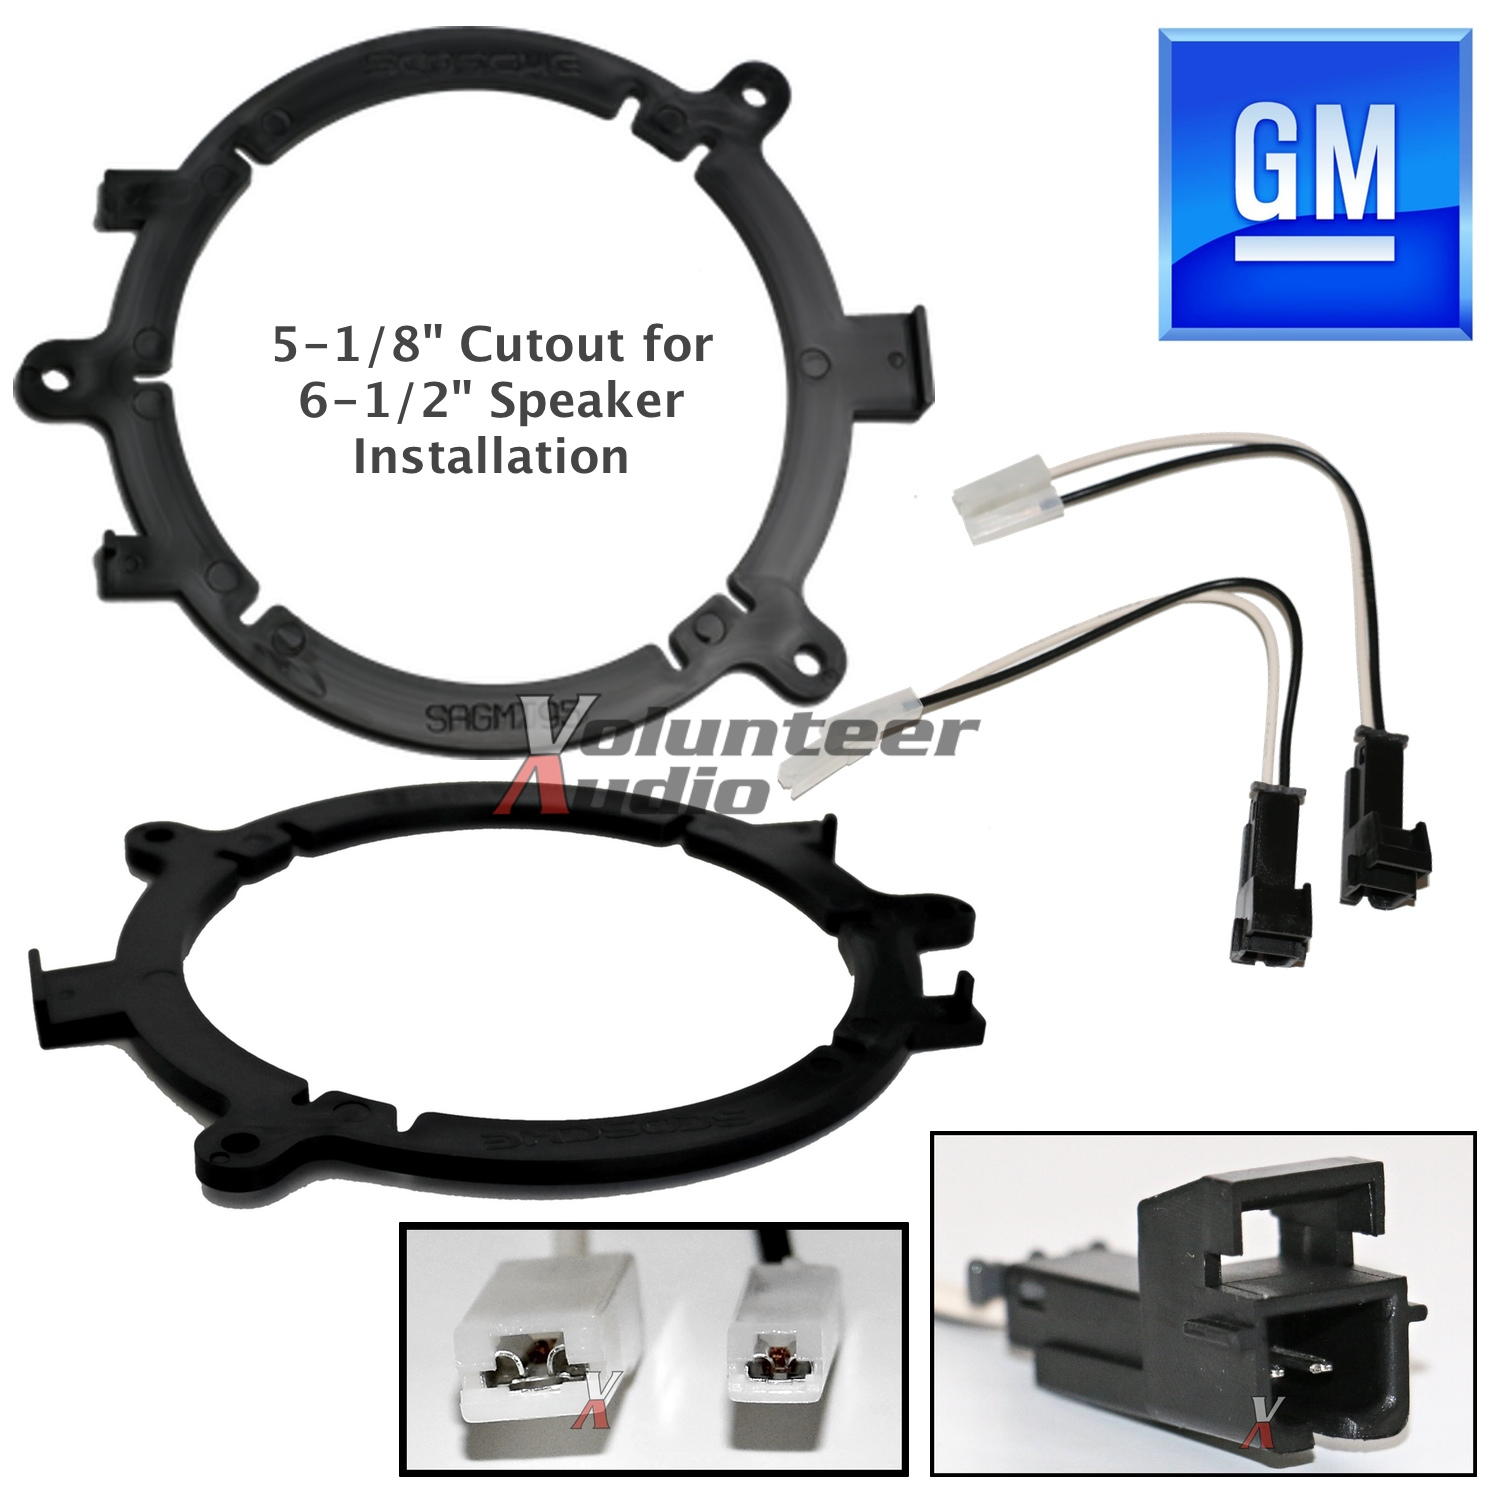 Ai Gmsb345 Shgm03b Gm Speaker Adapter For 1 Pair 65 Speakers Escalade Wiring Harness Links